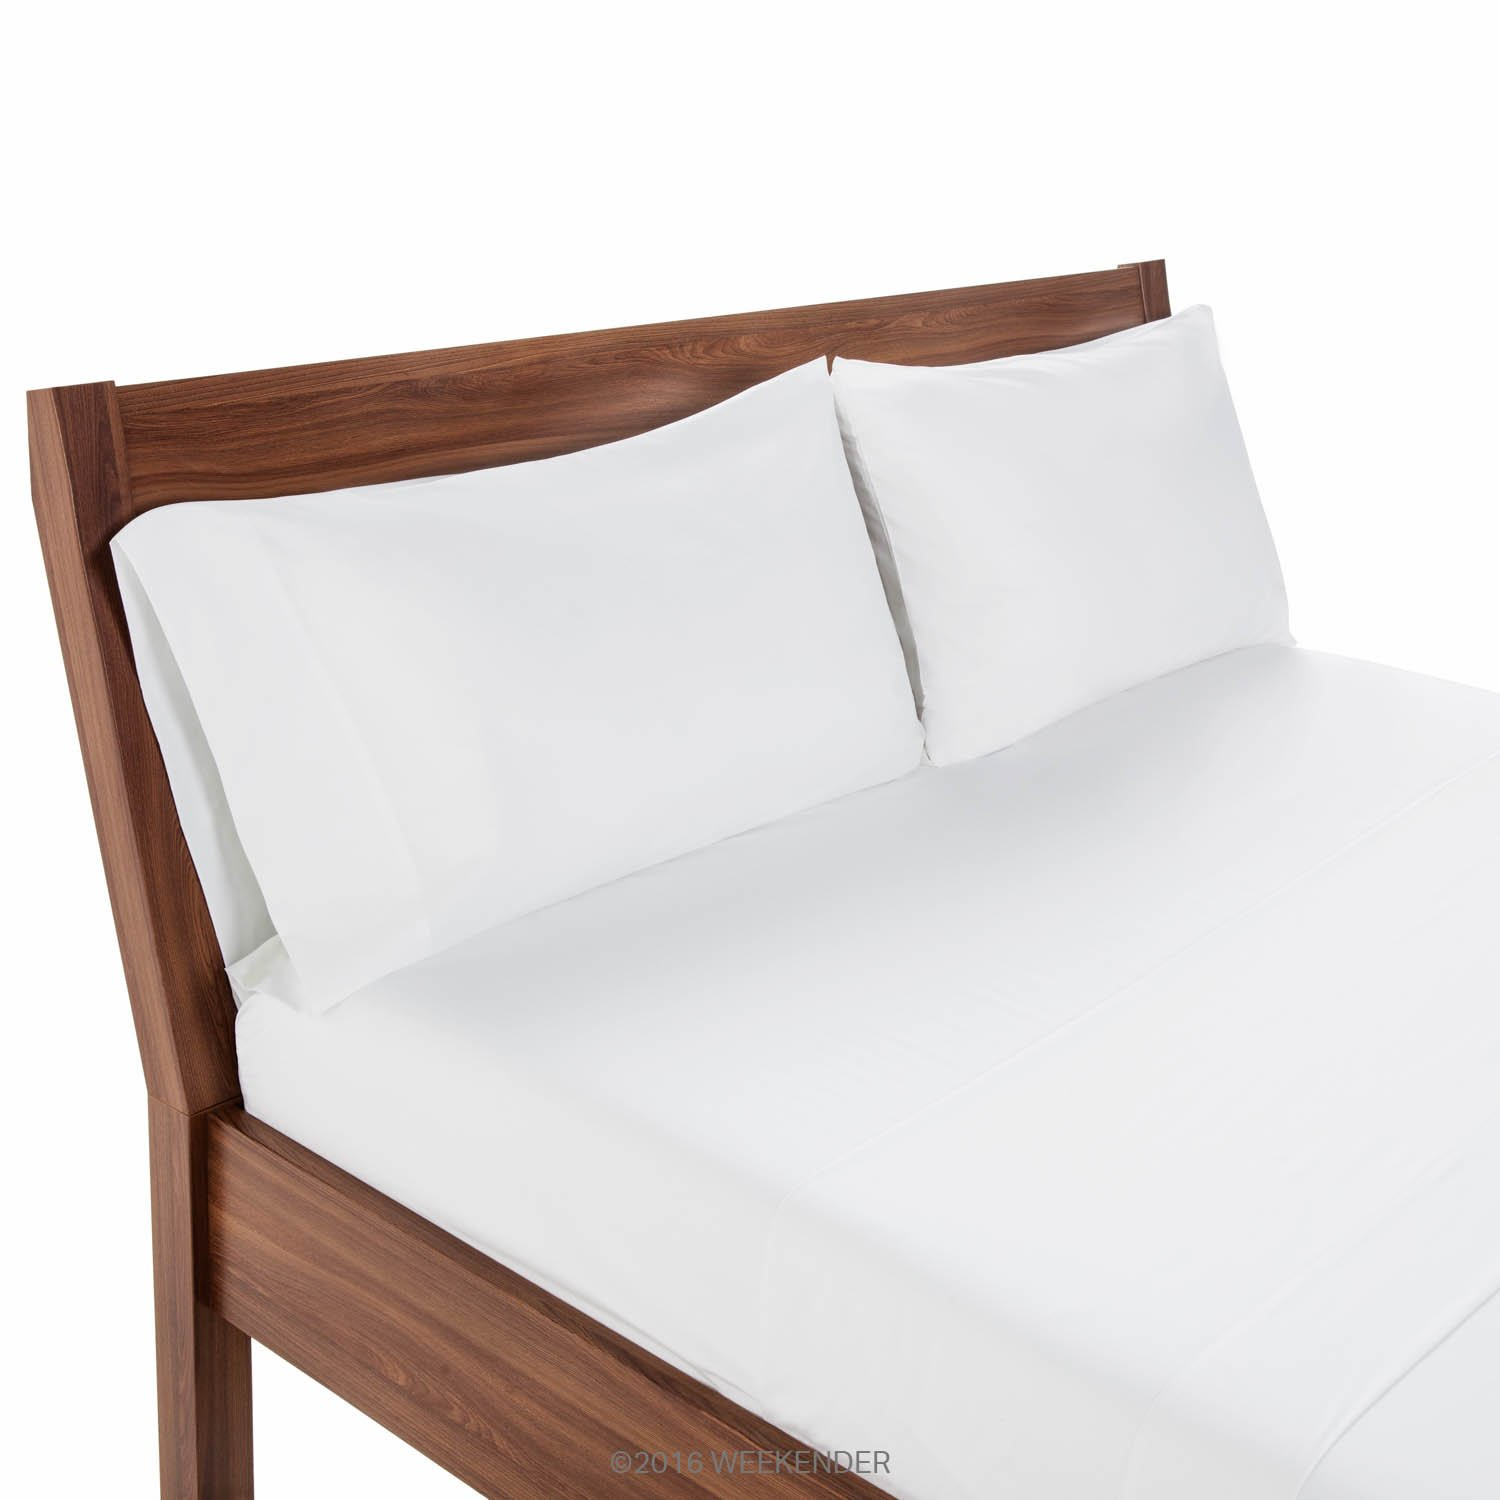 Cotton Rich Blend Set of 2 WEEKENDER 200 Thread Count Hotel Pillowcases White Queen WK02QQWH64PCHS